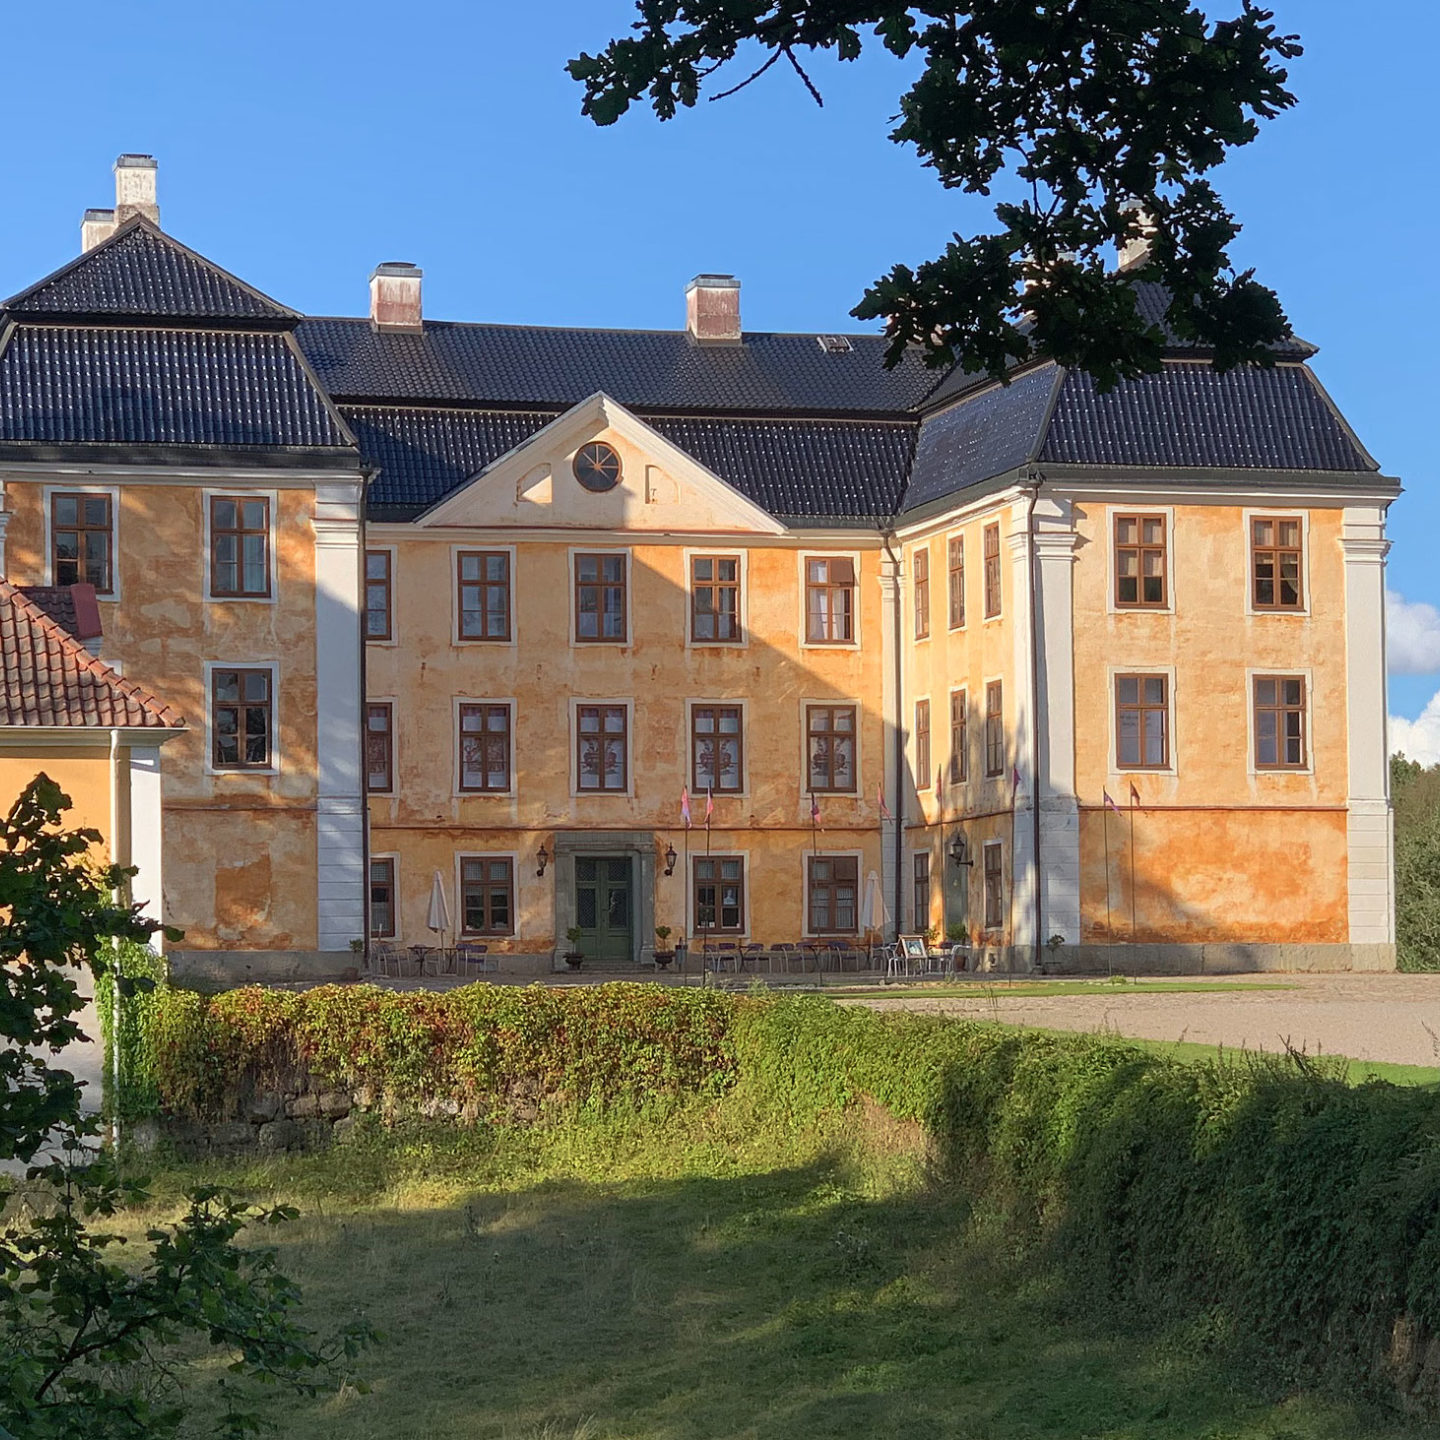 Experience Christinehof and the 1700th century - storytelling with Christina's friends in and around the castle that Christina Piper built. Christinehof Castle - Österlen